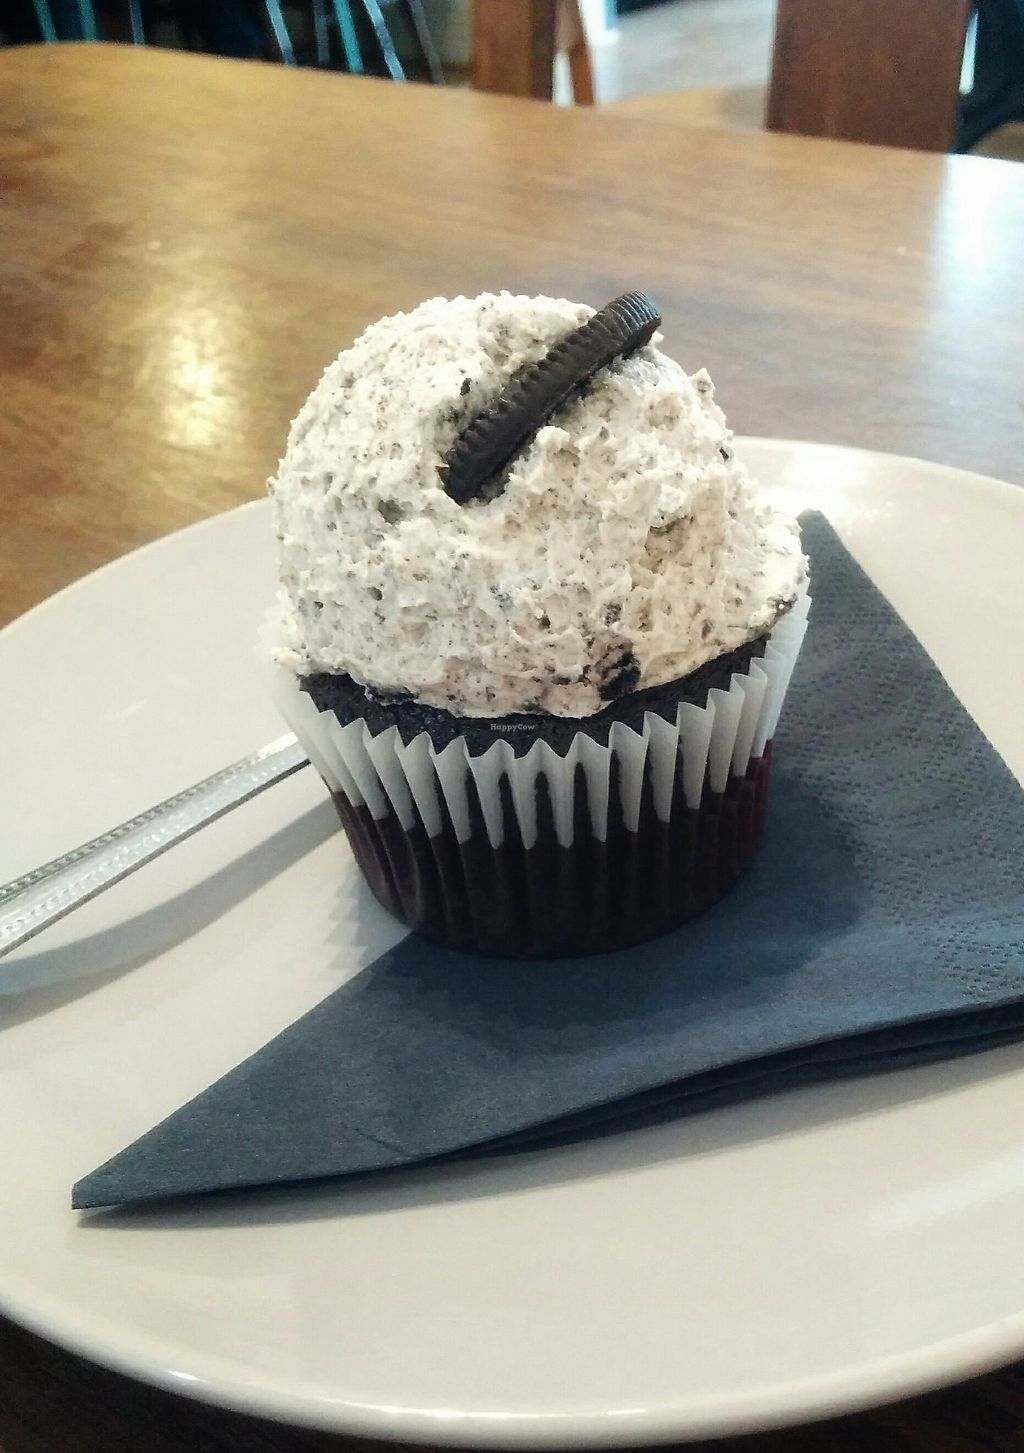 """Photo of Orchard Lane Coffee House  by <a href=""""/members/profile/Pupnik"""">Pupnik</a> <br/>Vegan Oreo cupcake <br/> November 16, 2017  - <a href='/contact/abuse/image/105314/326281'>Report</a>"""